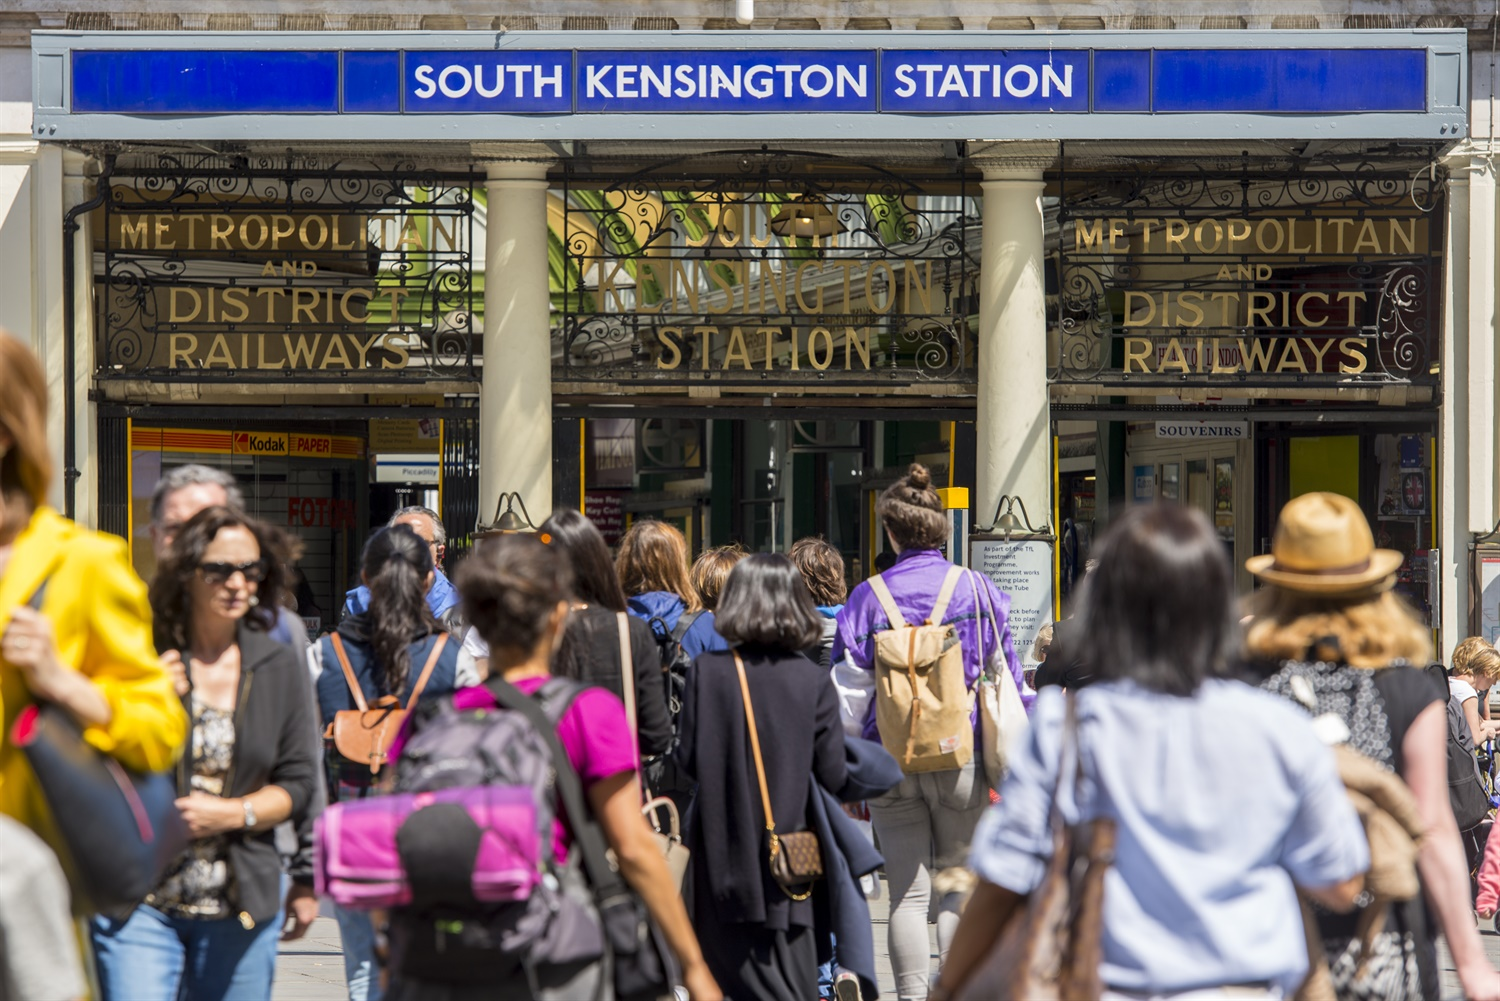 South Kensington: Building on a legacy